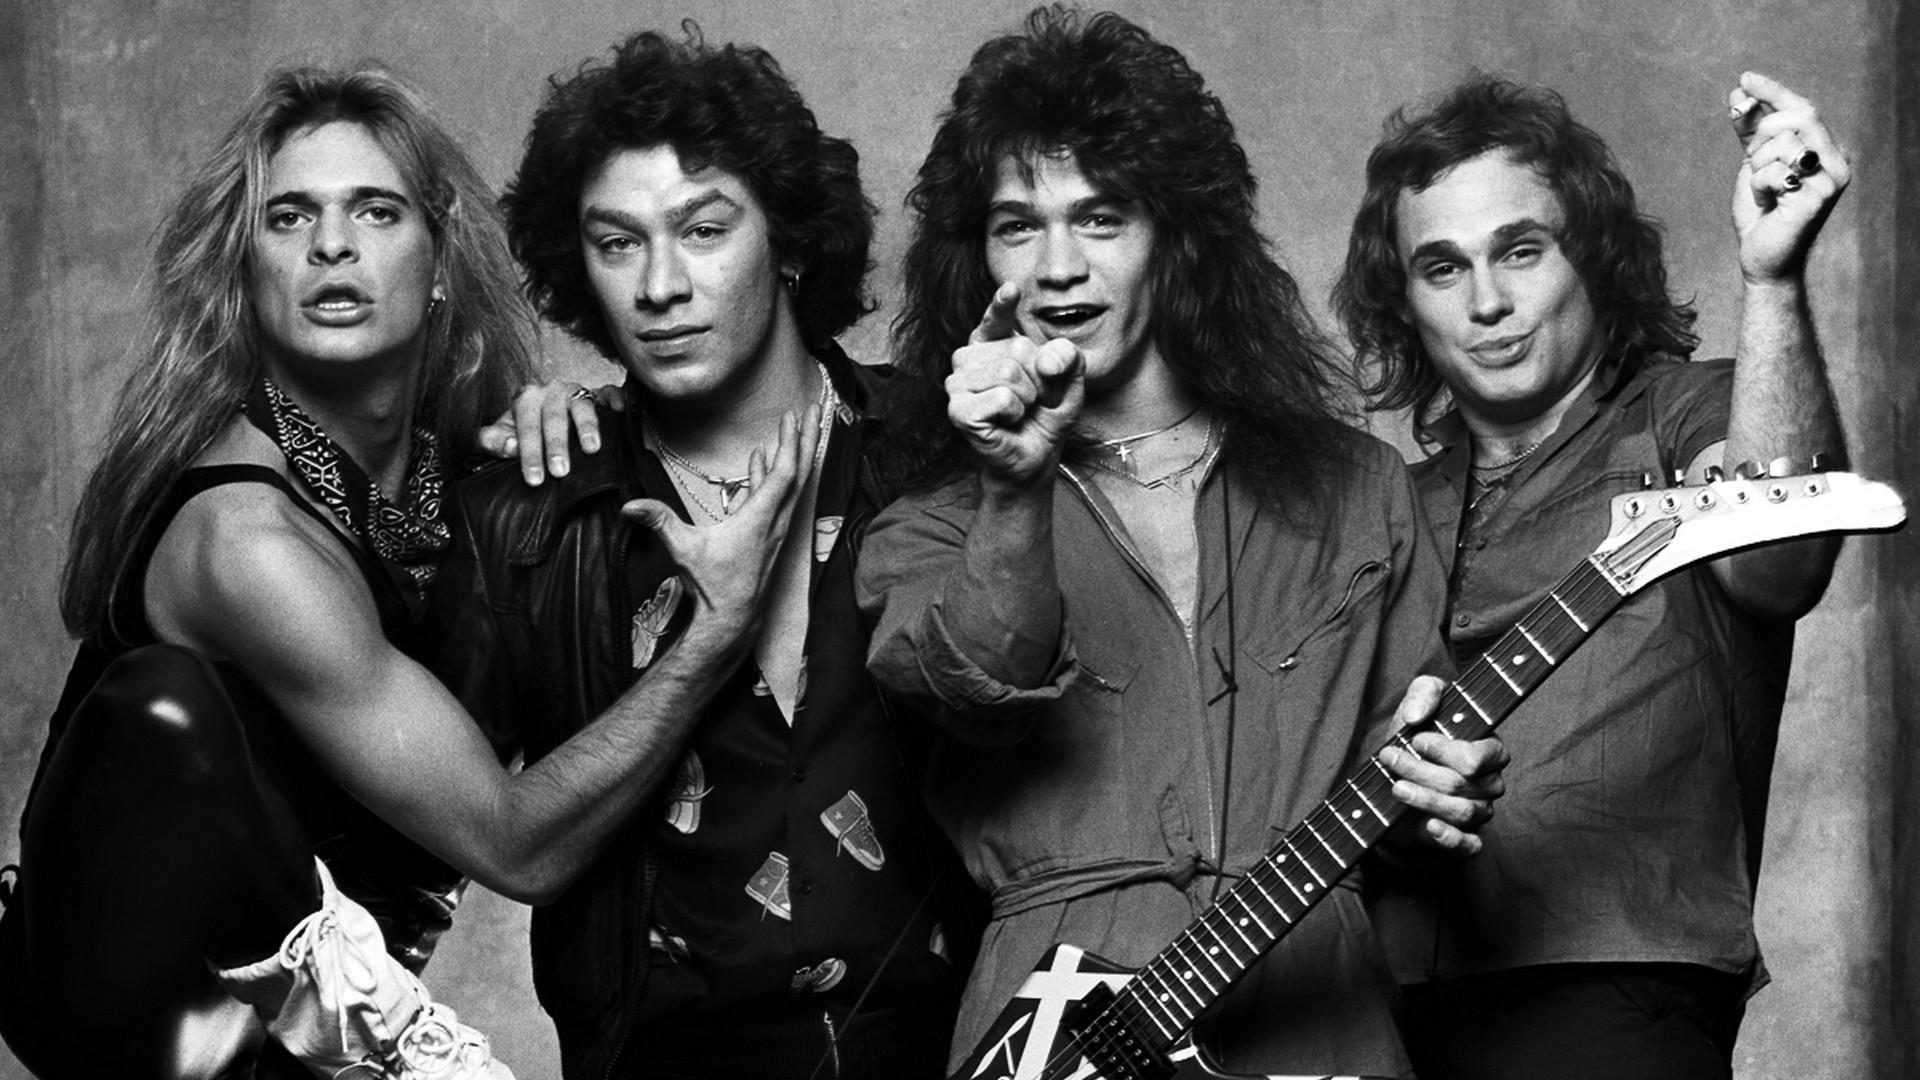 1920x1080 Wallpaper Van halen, Mark stone, Michael anthony, Sammy hagar, Mitch  malloy, Gary cherone, Bw HD, Picture, Image